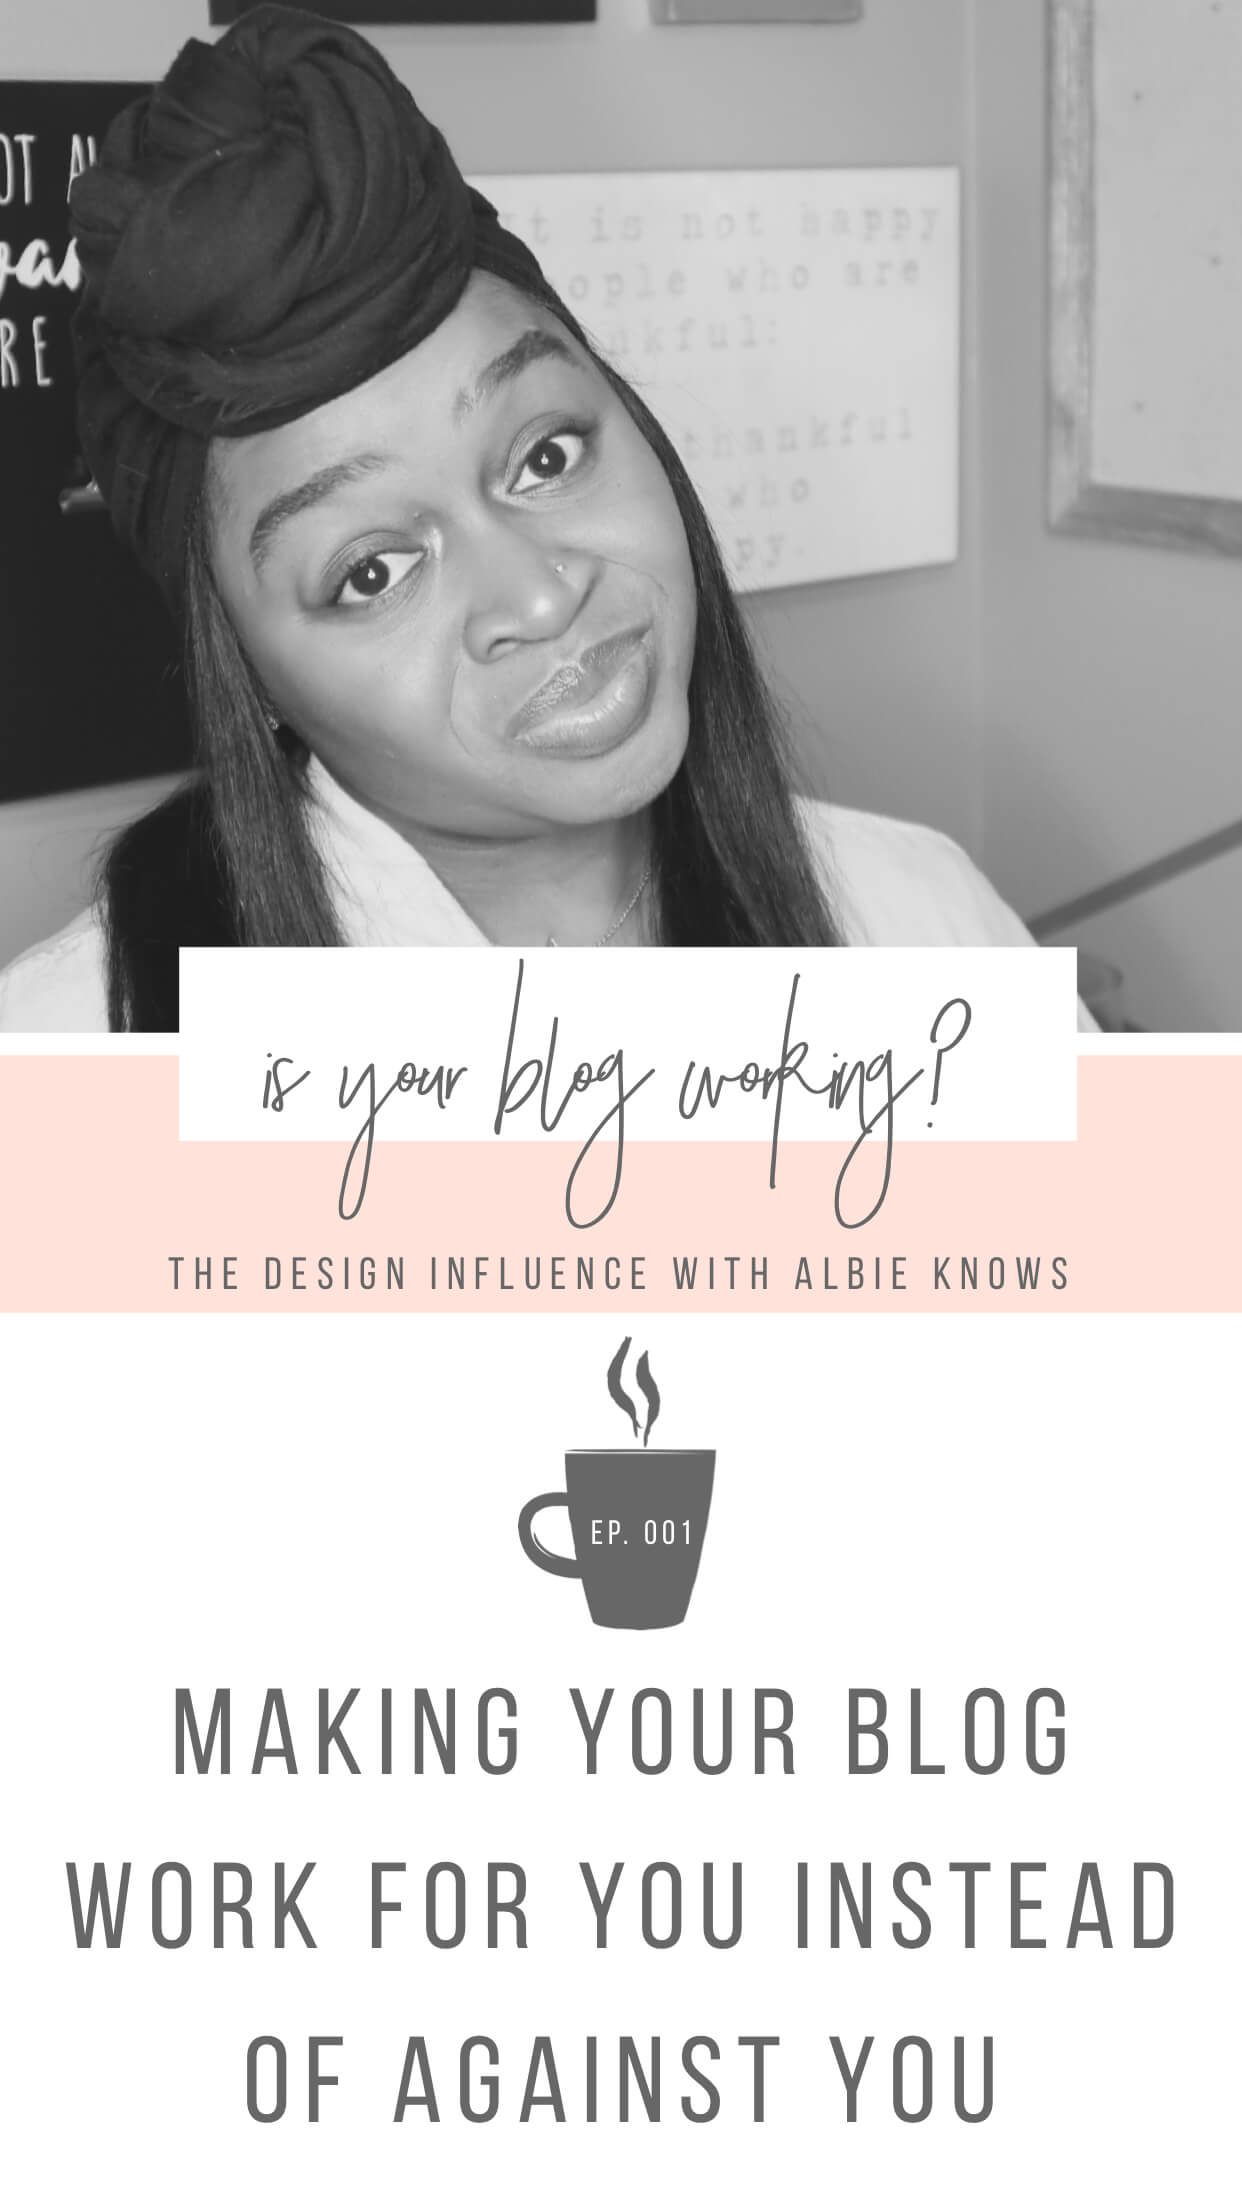 The Design Influence Episode 001: Making Your Blog Work For You Instead of Against You